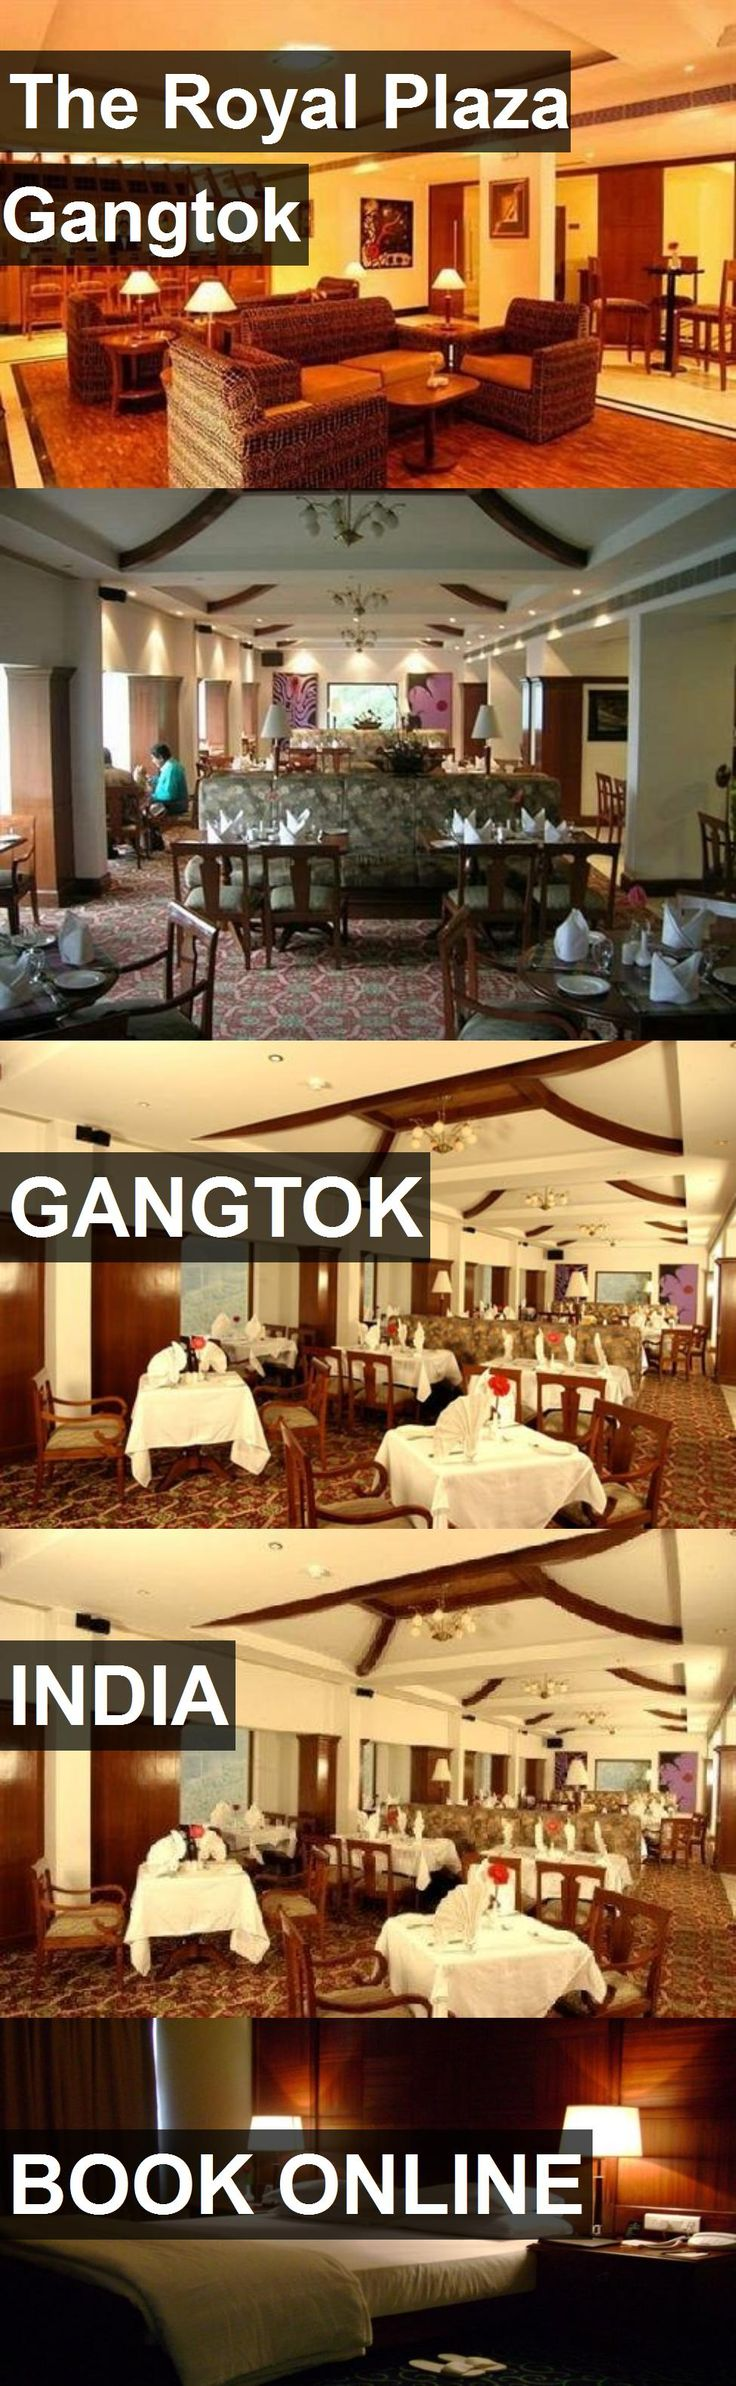 Hotel The Royal Plaza Gangtok in Gangtok, India. For more information, photos, reviews and best prices please follow the link. #India #Gangtok #travel #vacation #hotel